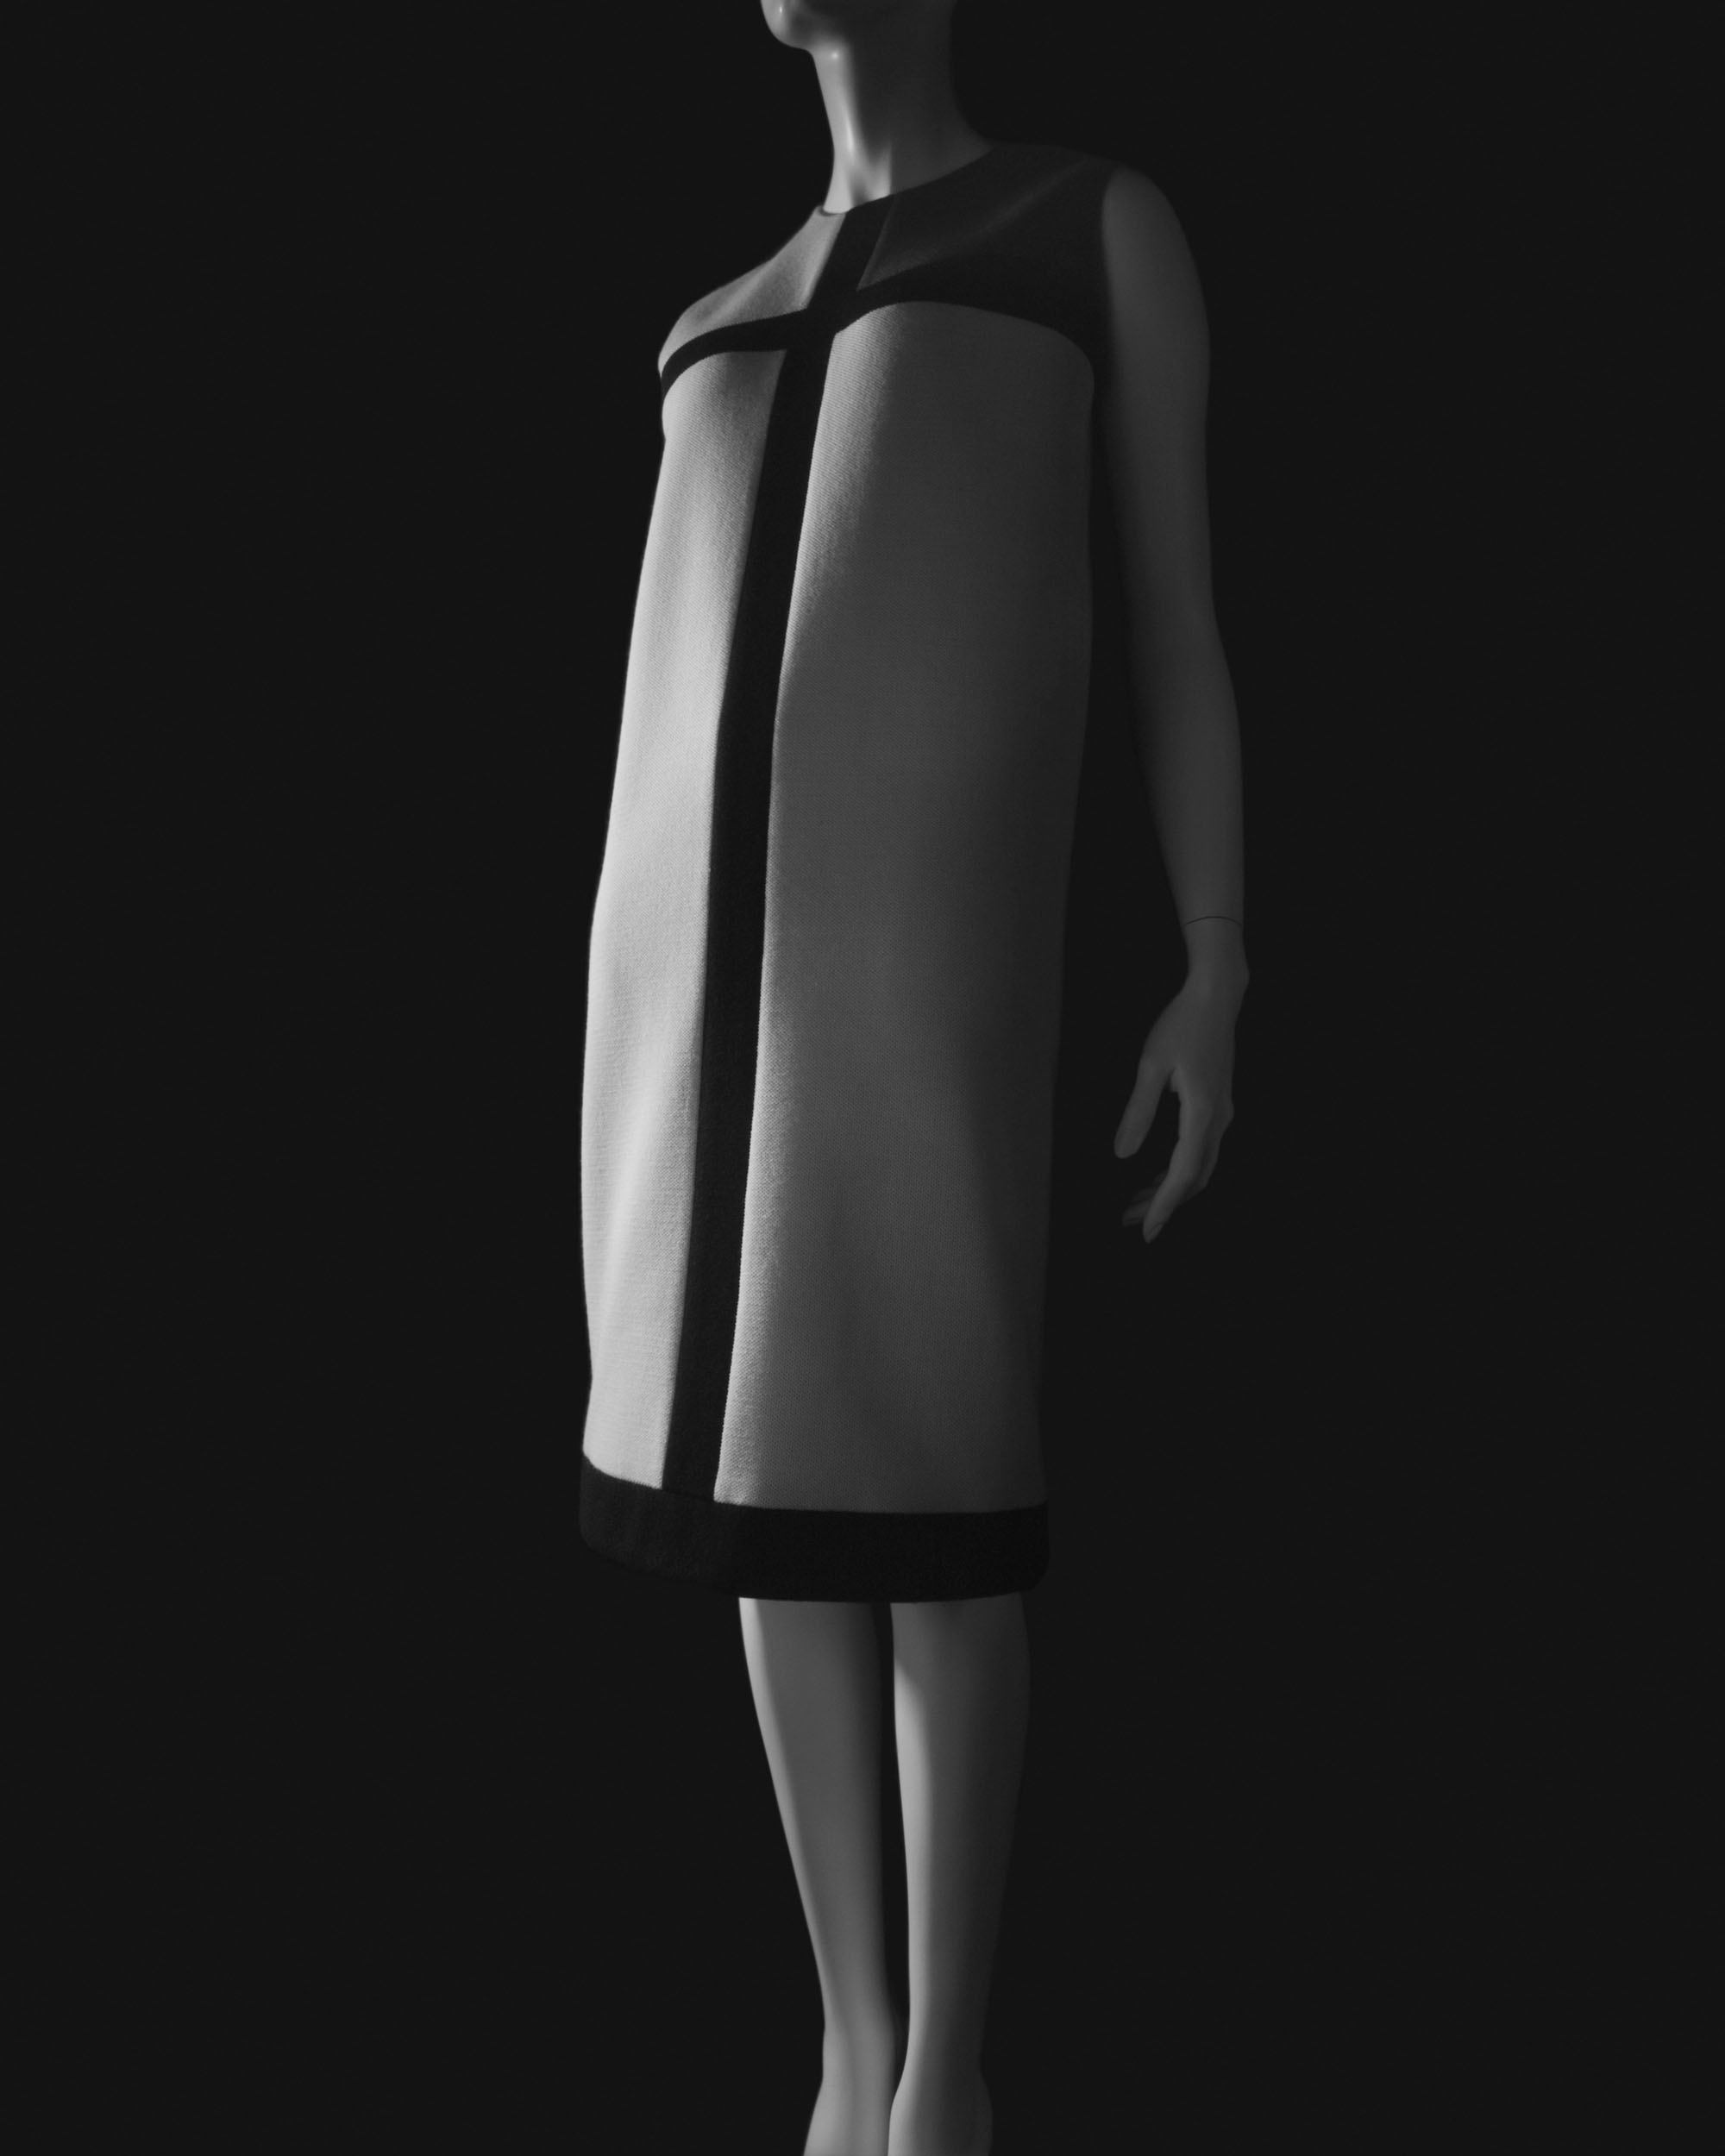 'Stylized Sculpture 008 (Yves Saint Laurent dress designed in 1965)' (2007) | DRESS: COLLECTION OF THEKYOTO COSTUME INSTITUTE; C HIROSHI SUGIMOTO/COURTESY OF GALLERY KOYANAGI